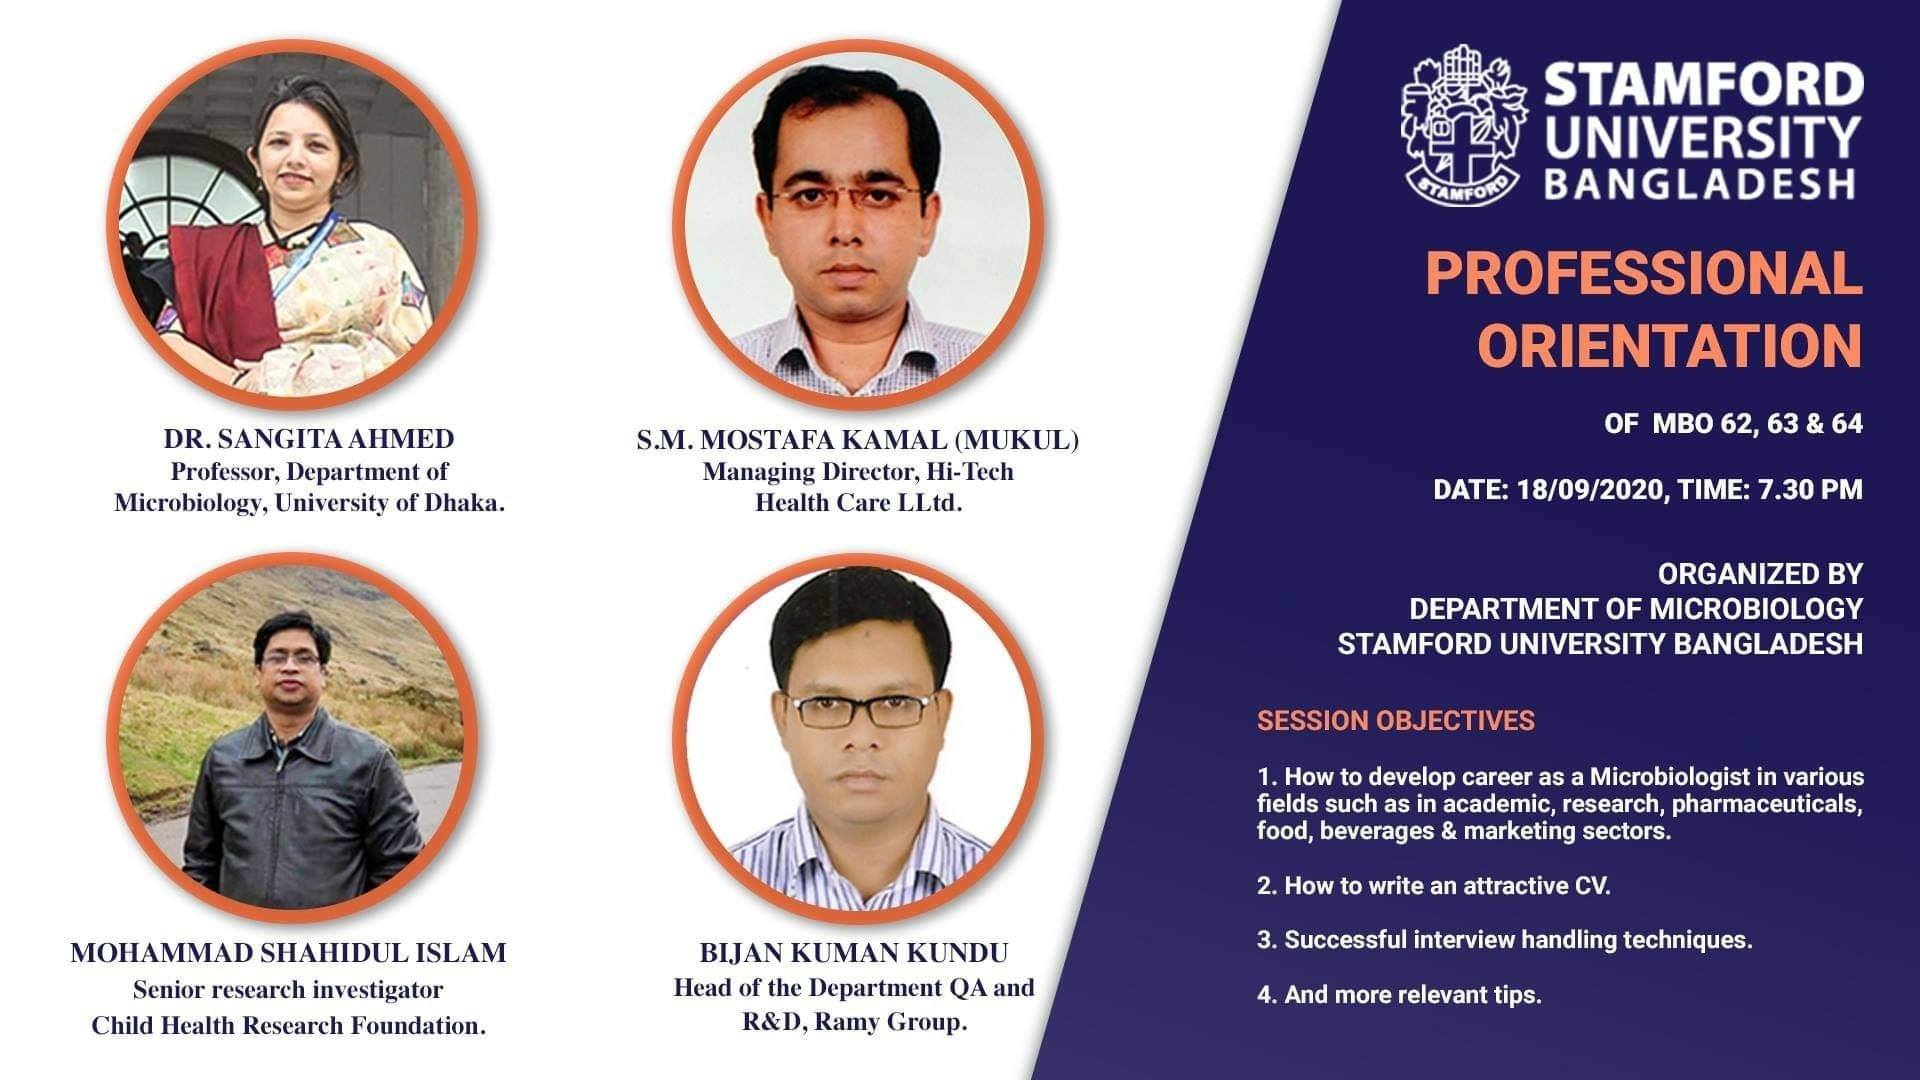 PROFESSIONAL ORIENTATION OF MBO 62, 63 & 64.